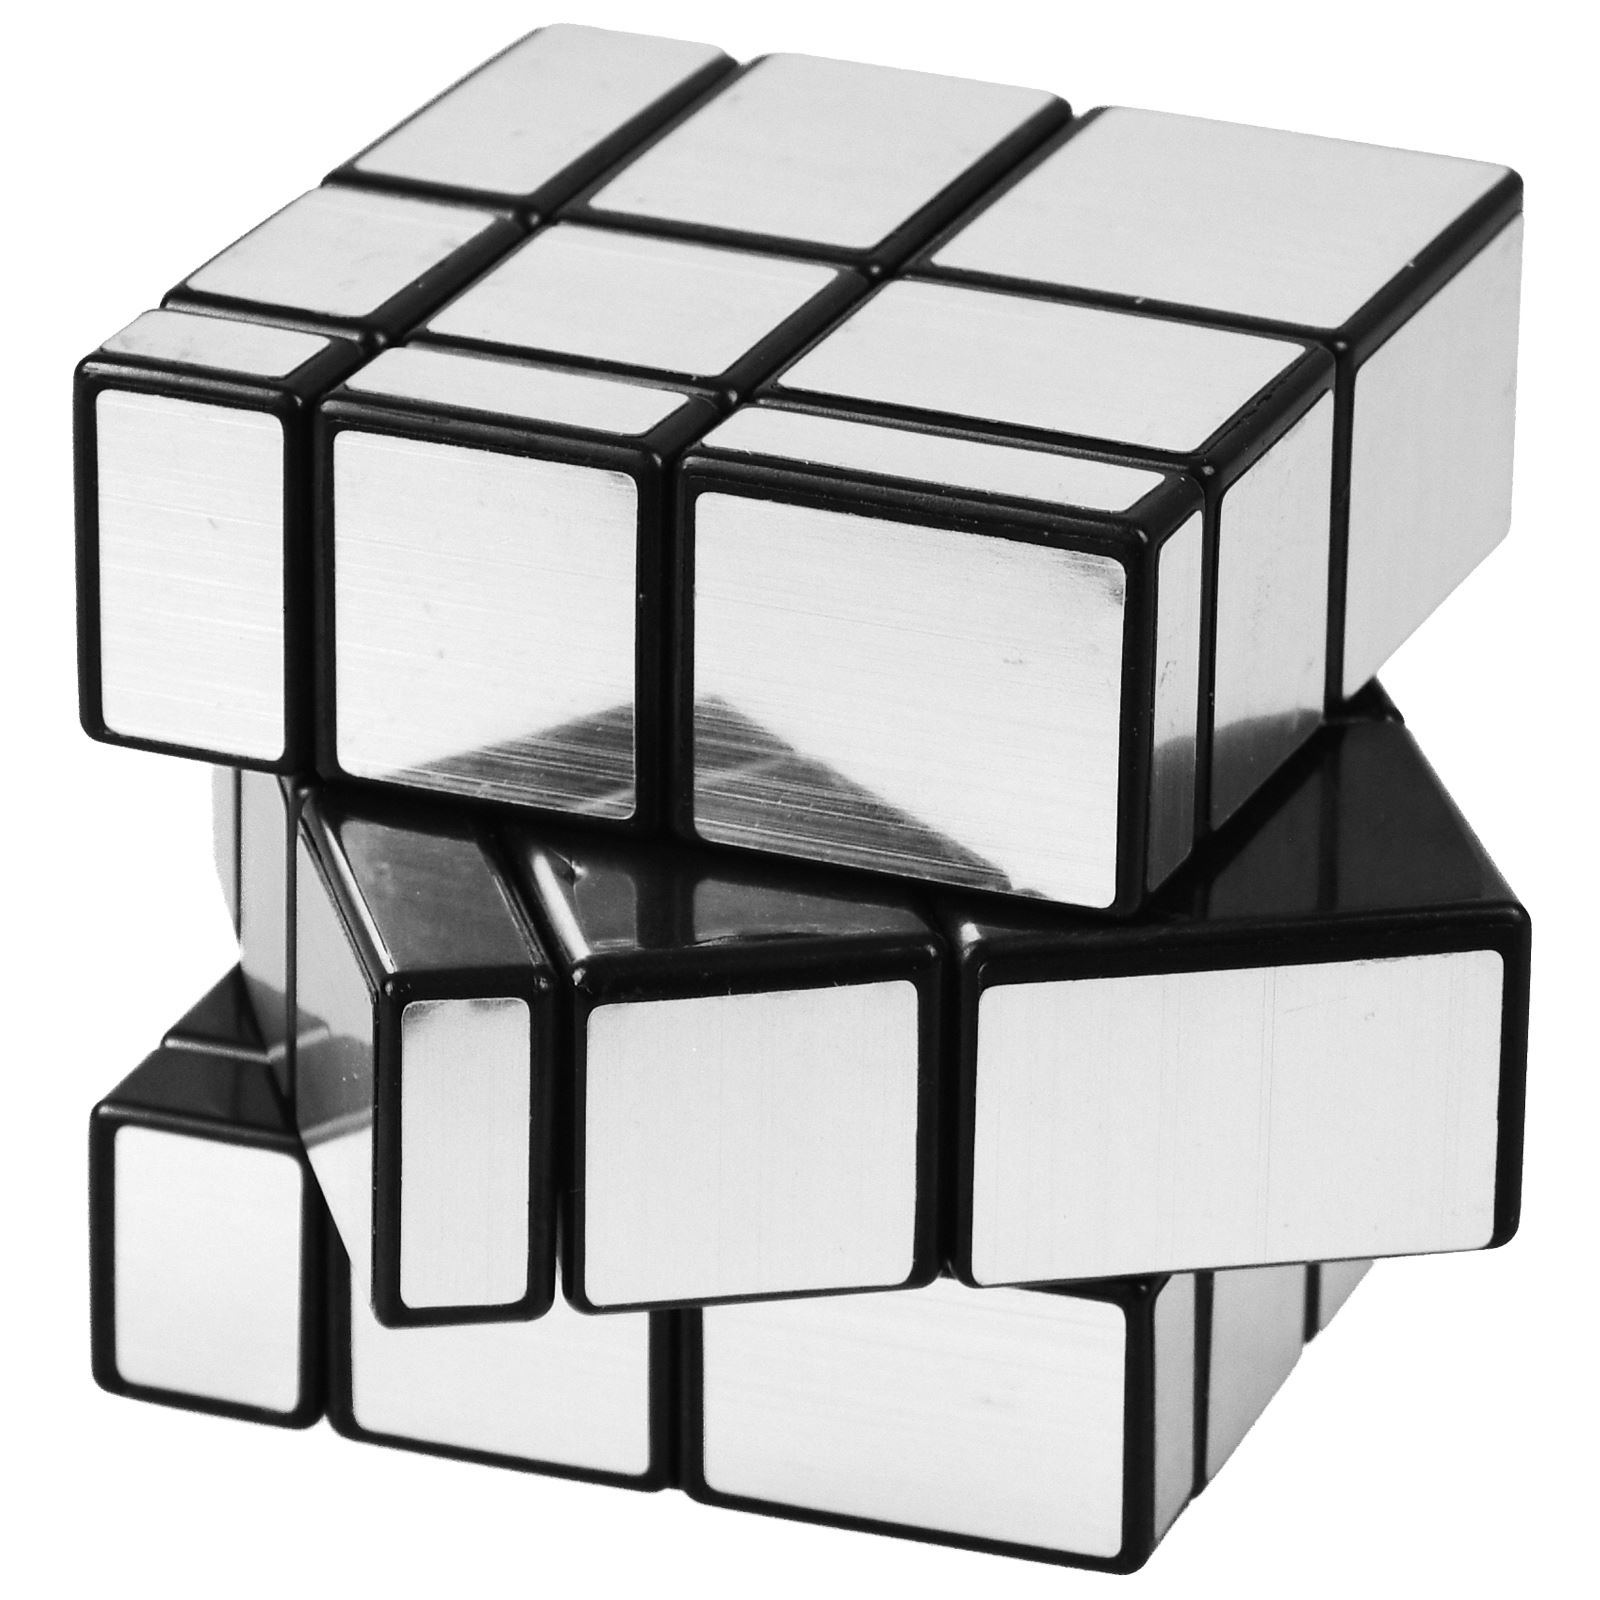 3x3-Miroir-Cube-Puzzle-Mind-Game-Brain-Teasers-Magic-scies-sauteuses-enfants-jouet-adulte-cadeau miniature 8